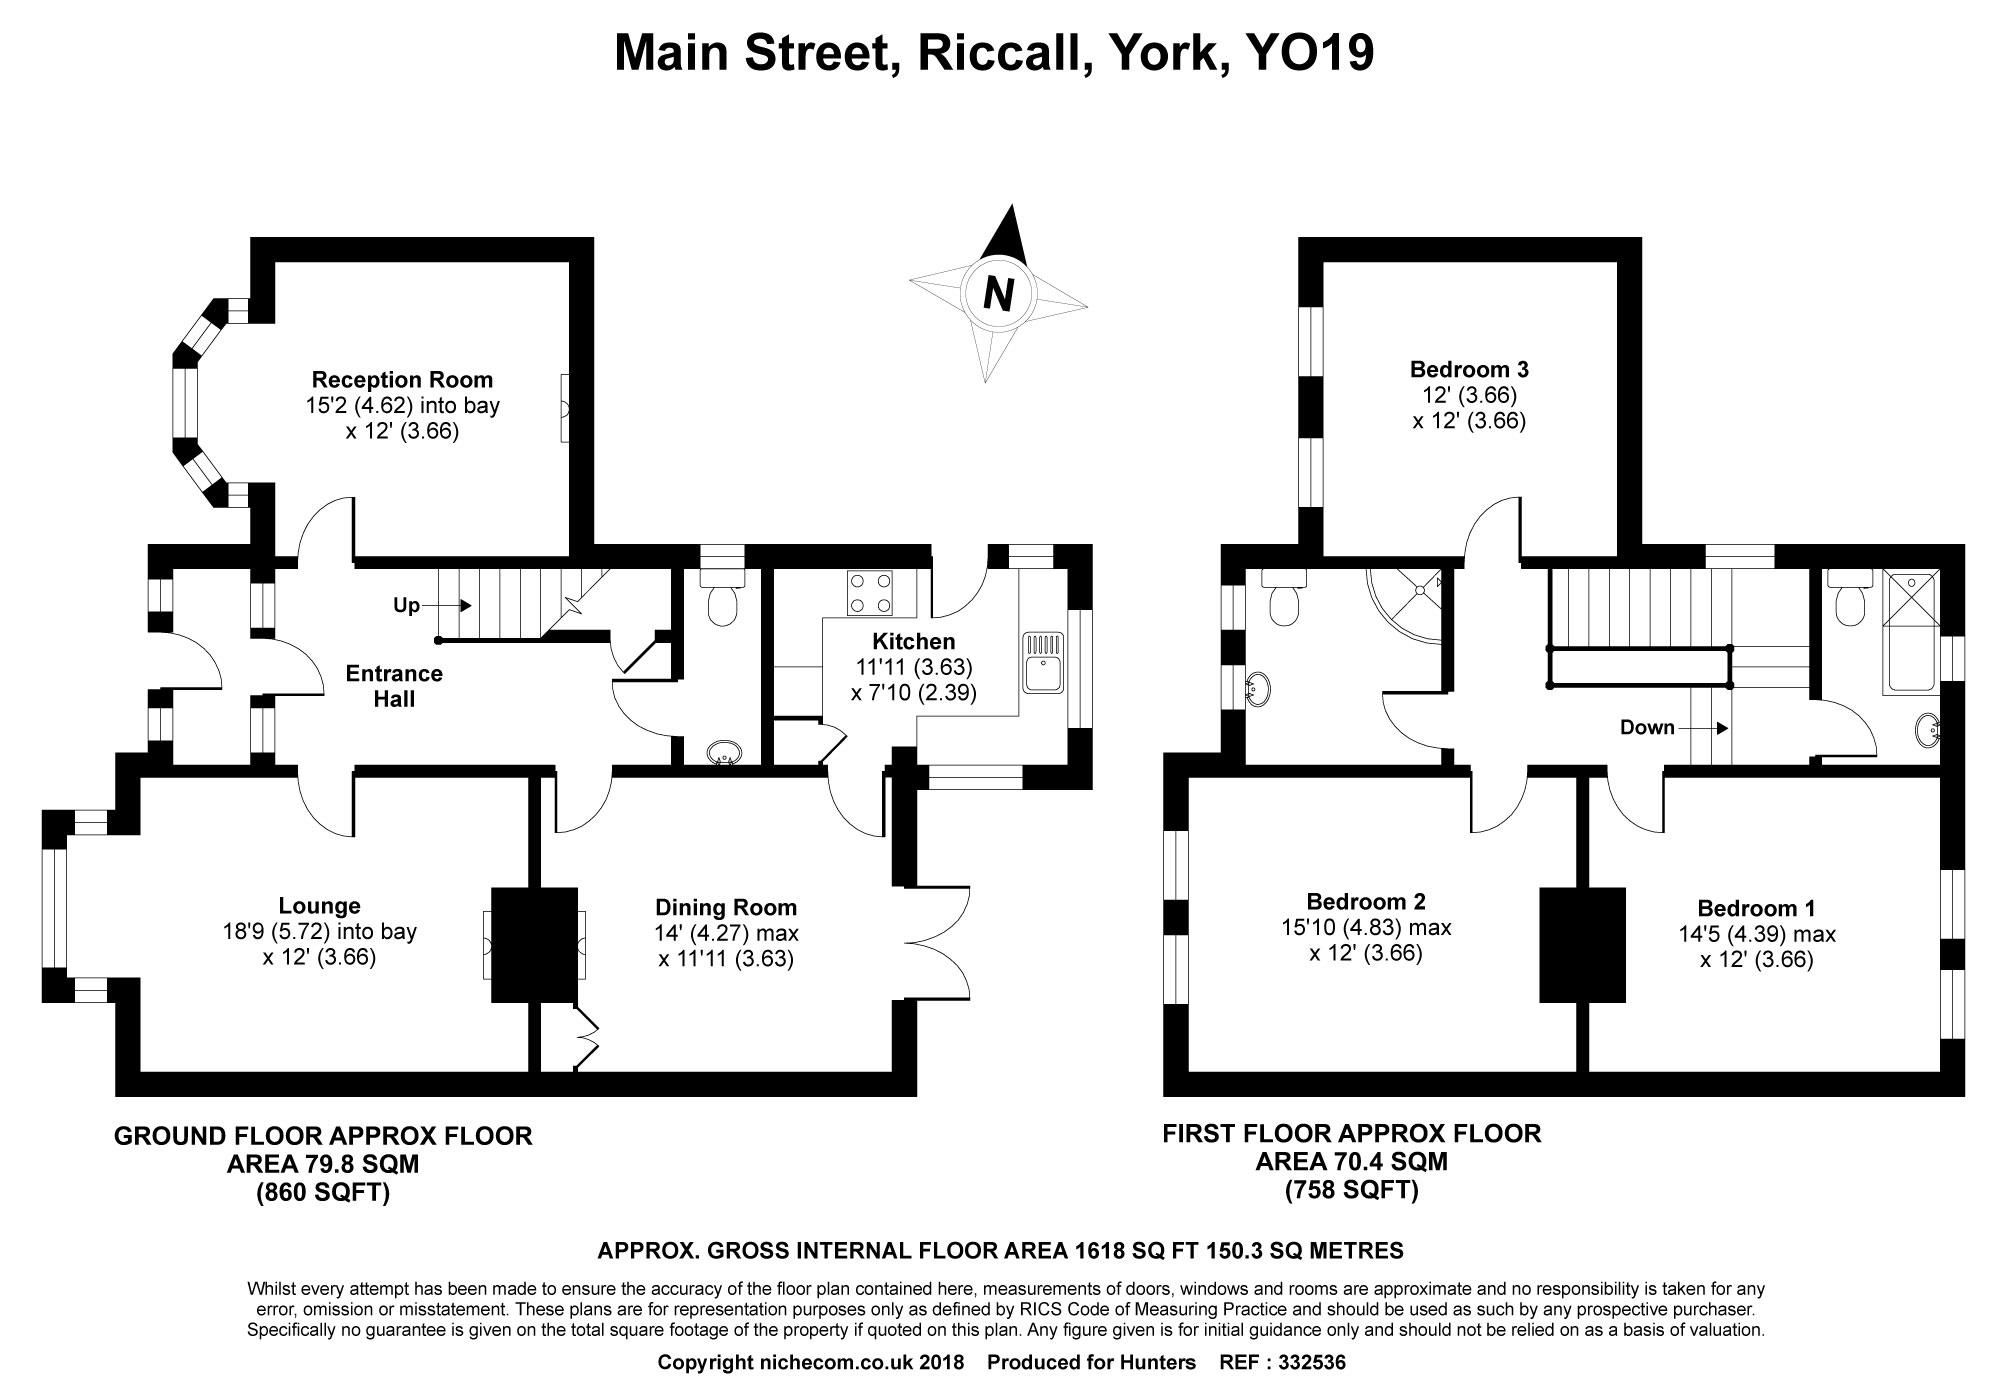 4 Bedrooms Detached house for sale in Main Street, Riccall, York YO19